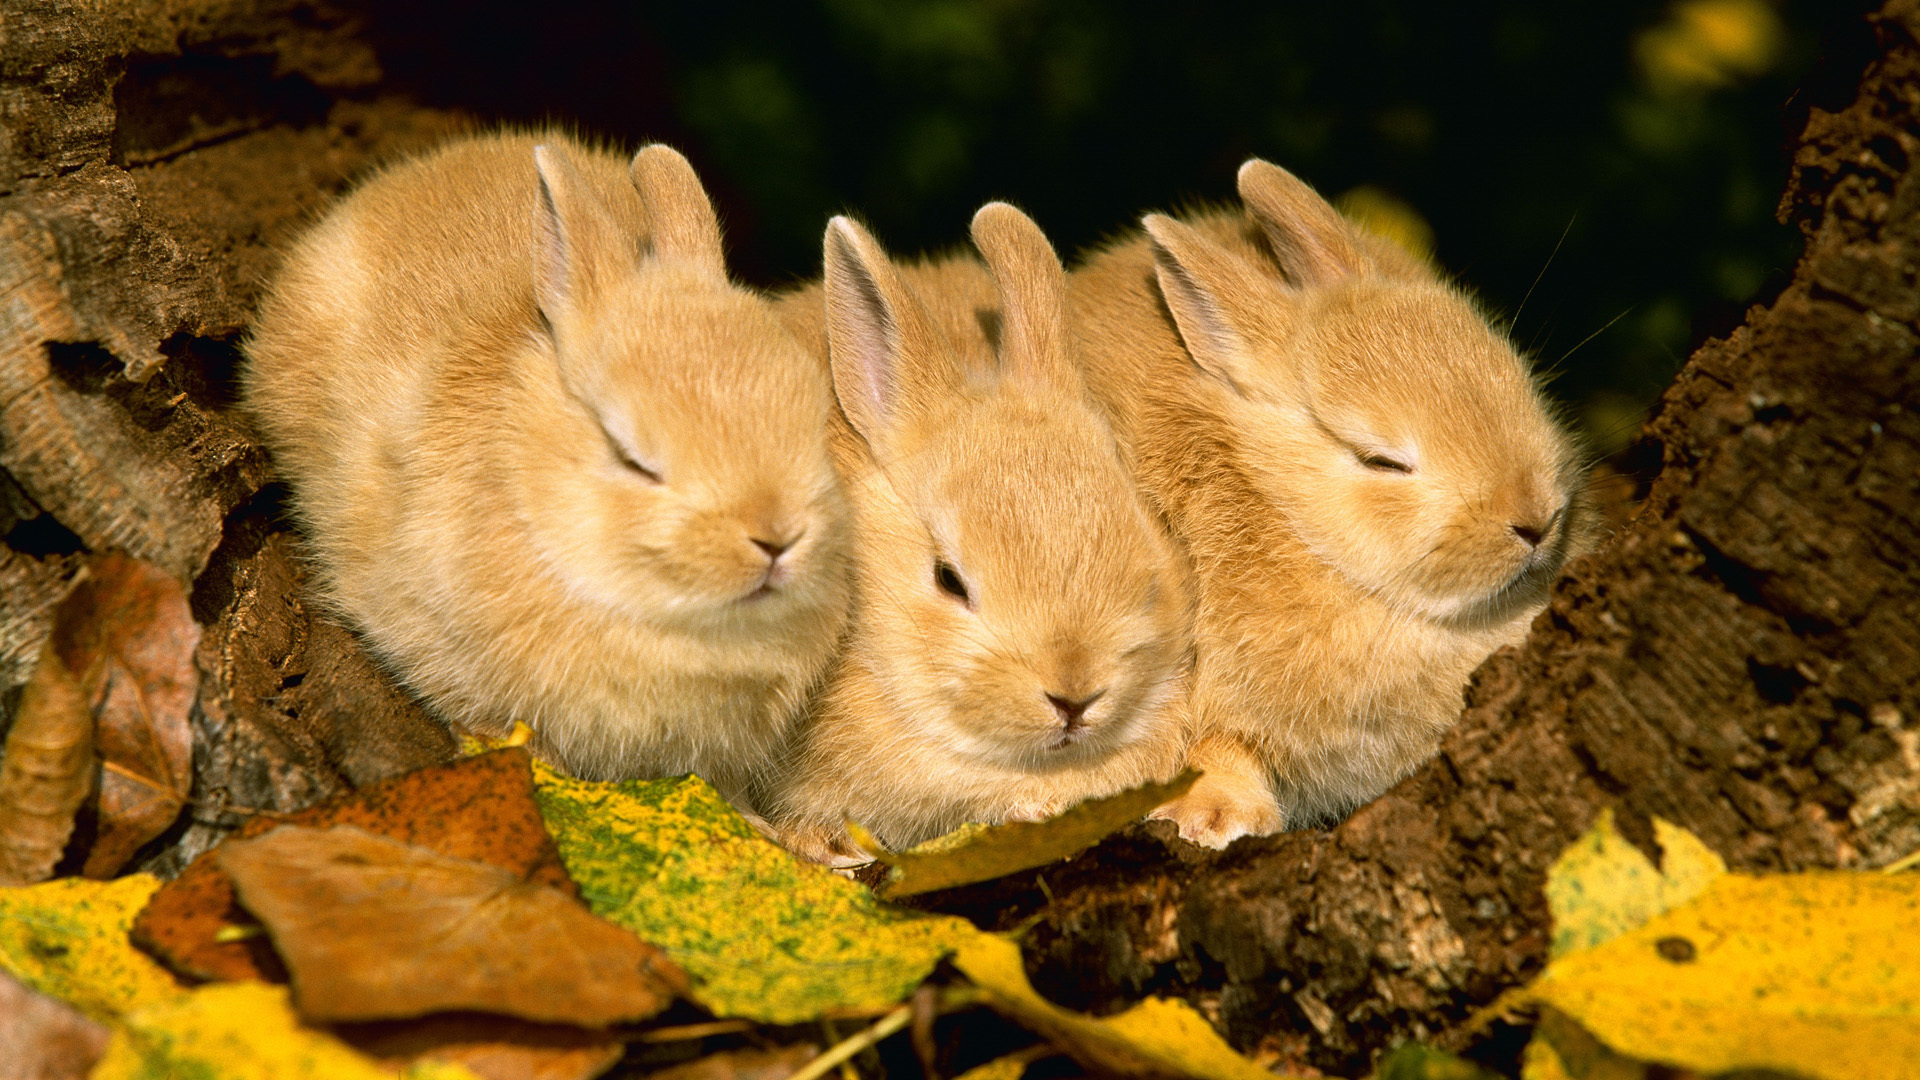 26070 download wallpaper Animals, Rabbits screensavers and pictures for free